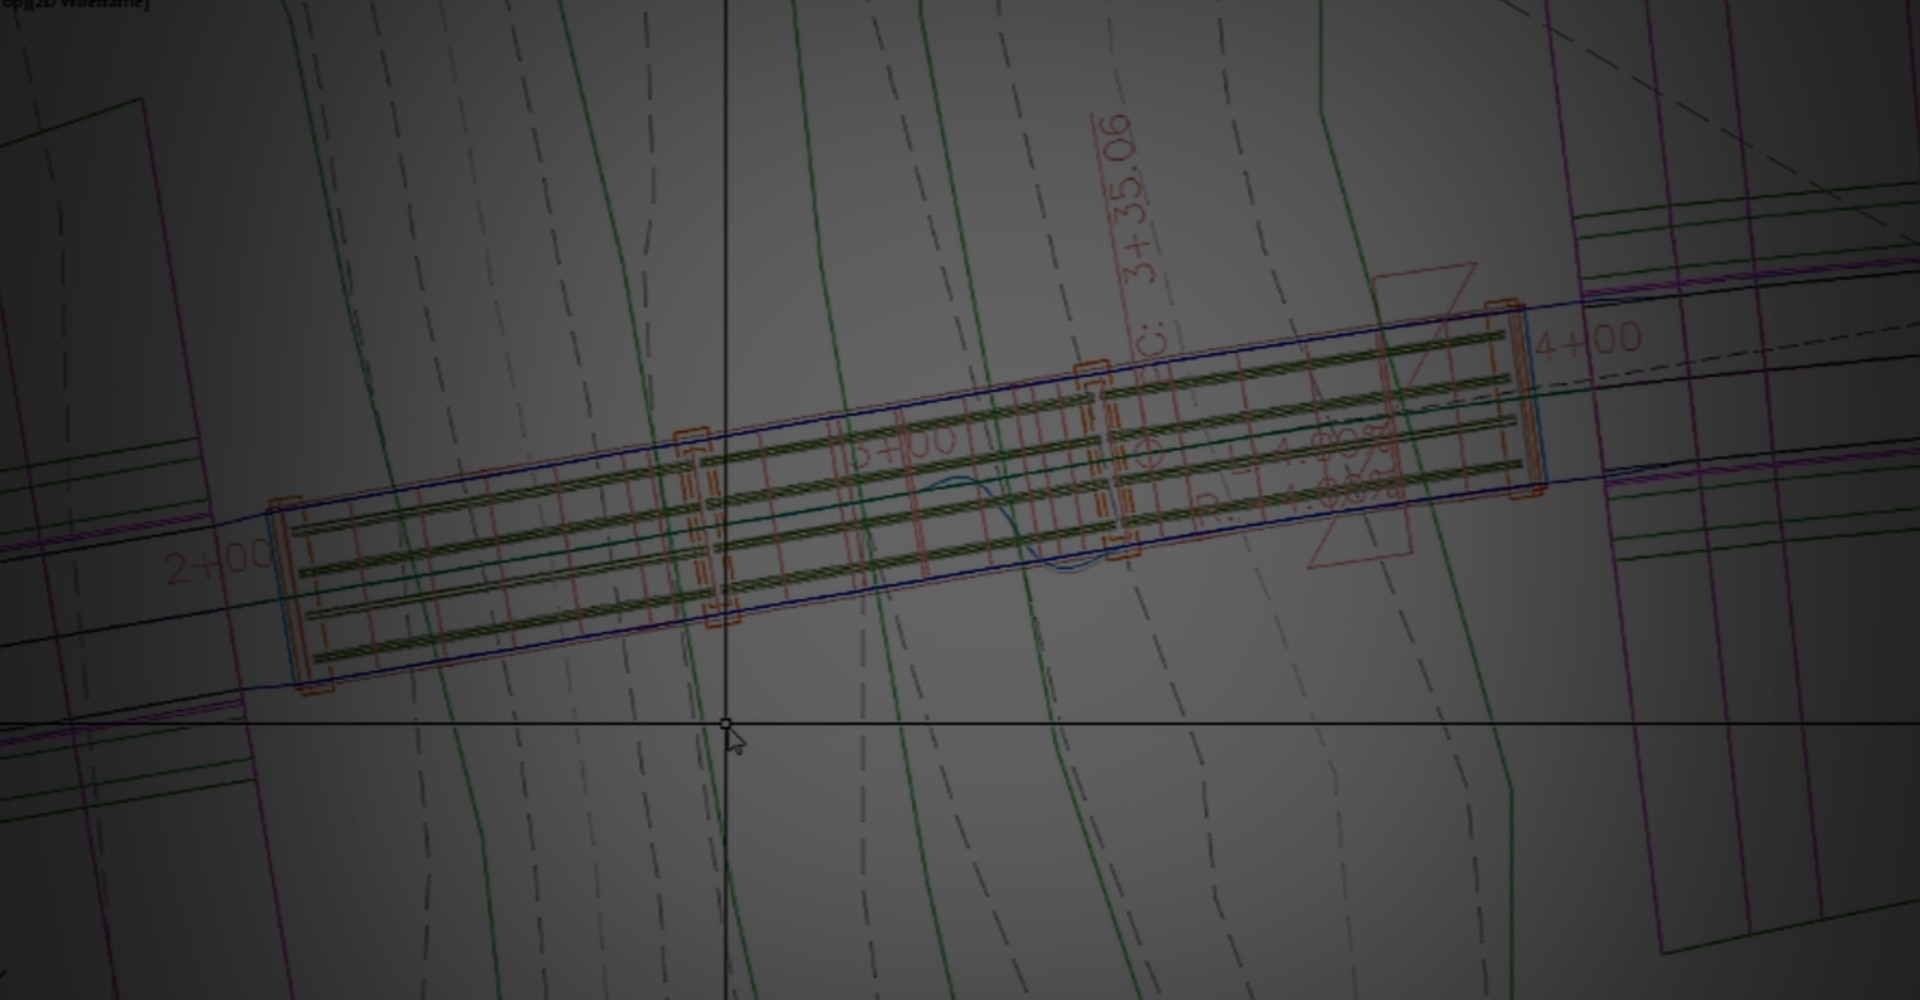 Civil 3d Engineering Software Autodesk Cat 5 Crossover Cable Wiring Diagram